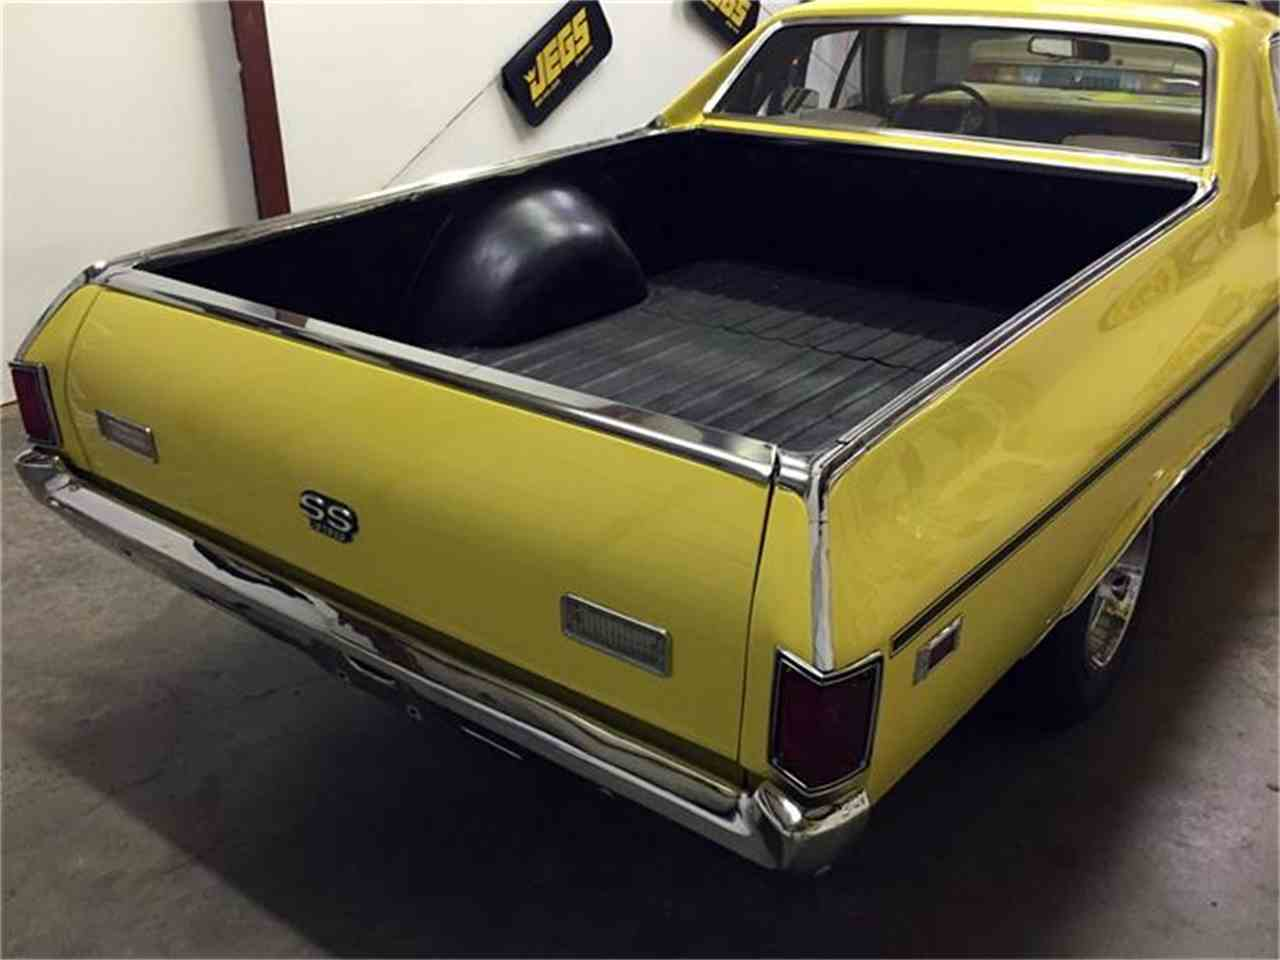 Large Picture of Classic 1969 El Camino SS 396 located in Georgia - $31,000.00 - I1KN